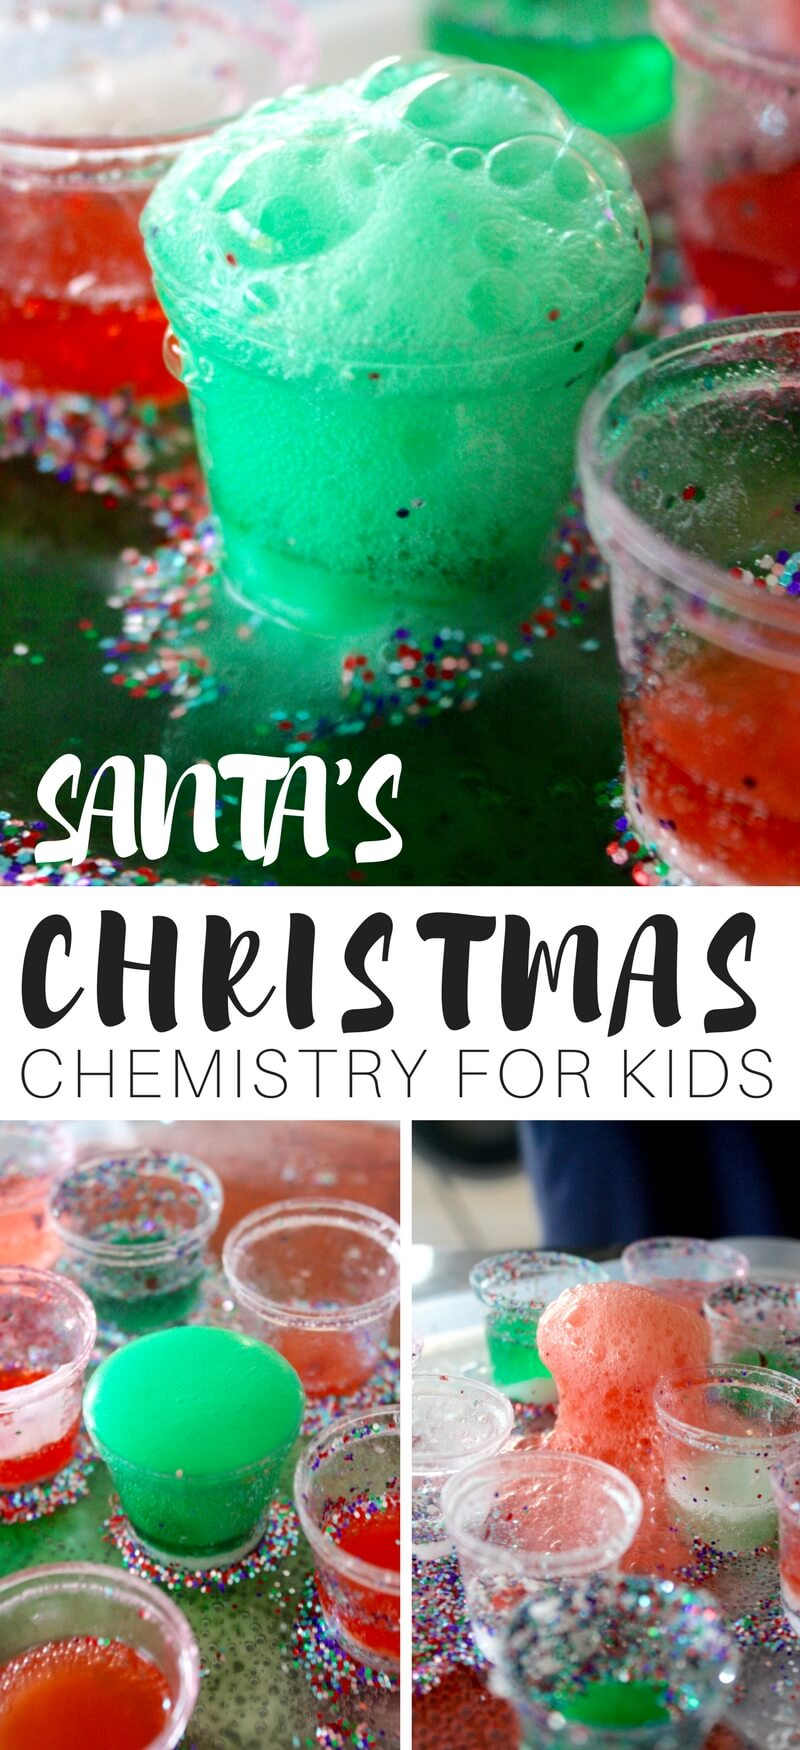 Glitter everywhere with easy holiday science. Try our festive santa eruptions with a classic baking soda science activity. This no fuss Christmas science experiment is perfect for busy days. Join us for our 25 Days of Christmas STEM Countdown and countdown to Christmas with lots of fun, easy, and frugal STEM activities and science experiments all with a holiday theme.